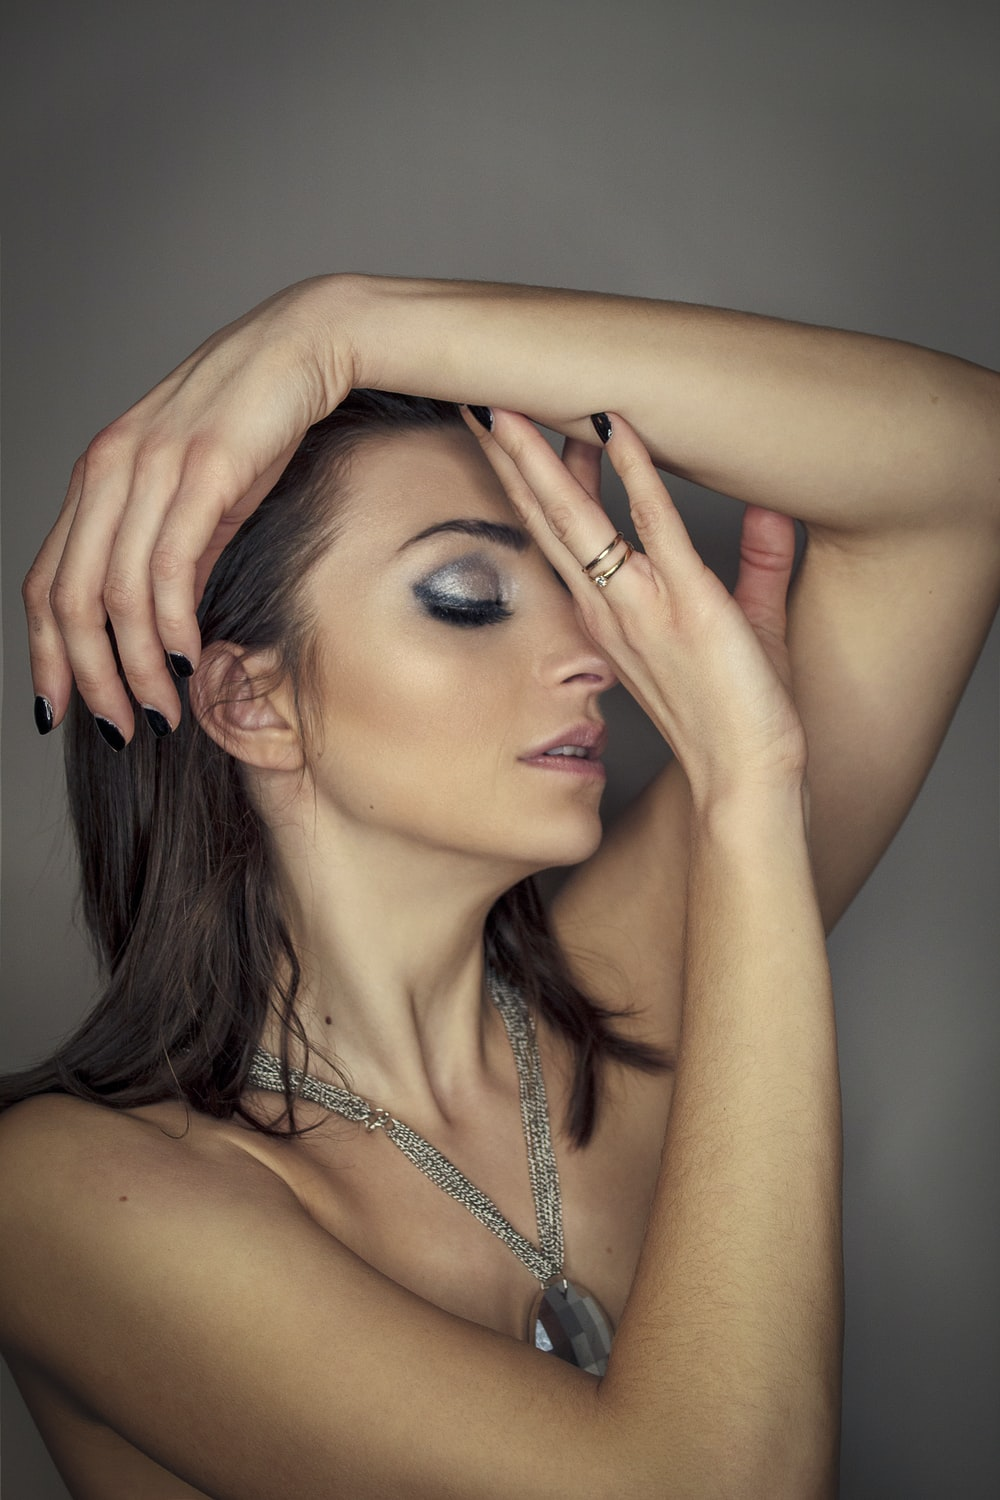 woman in silver necklace covering her face with her hand